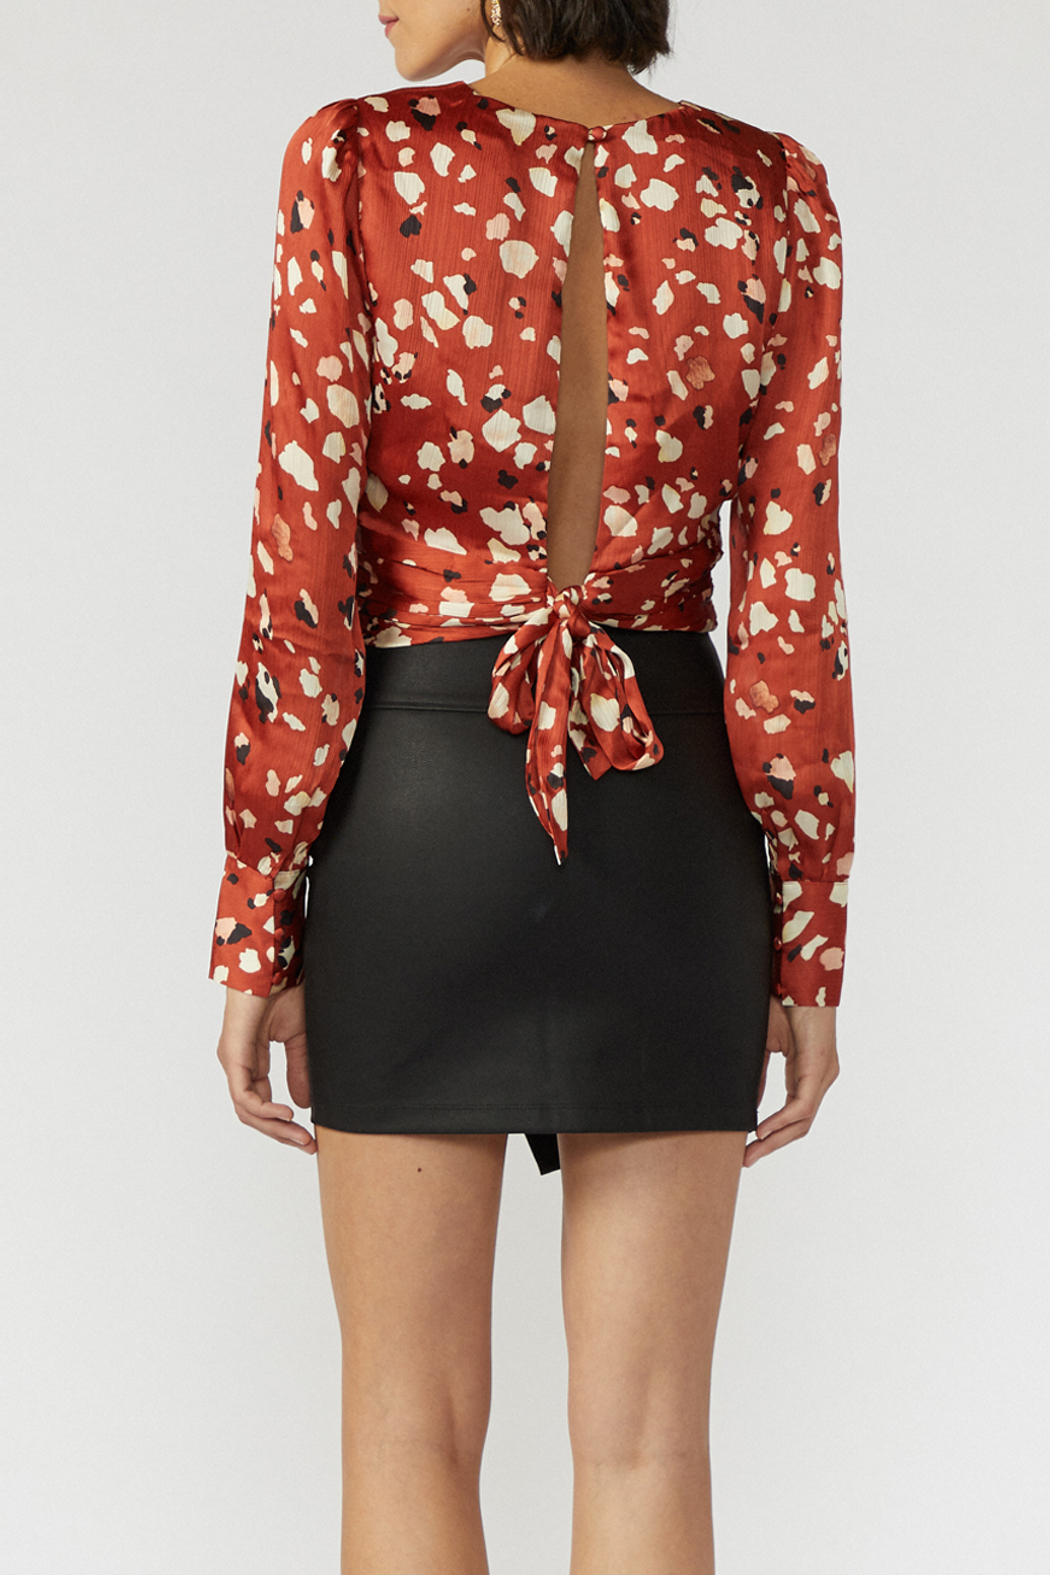 Adelyn Rae Mae Open Back Cropped Blouse - Front Full Image